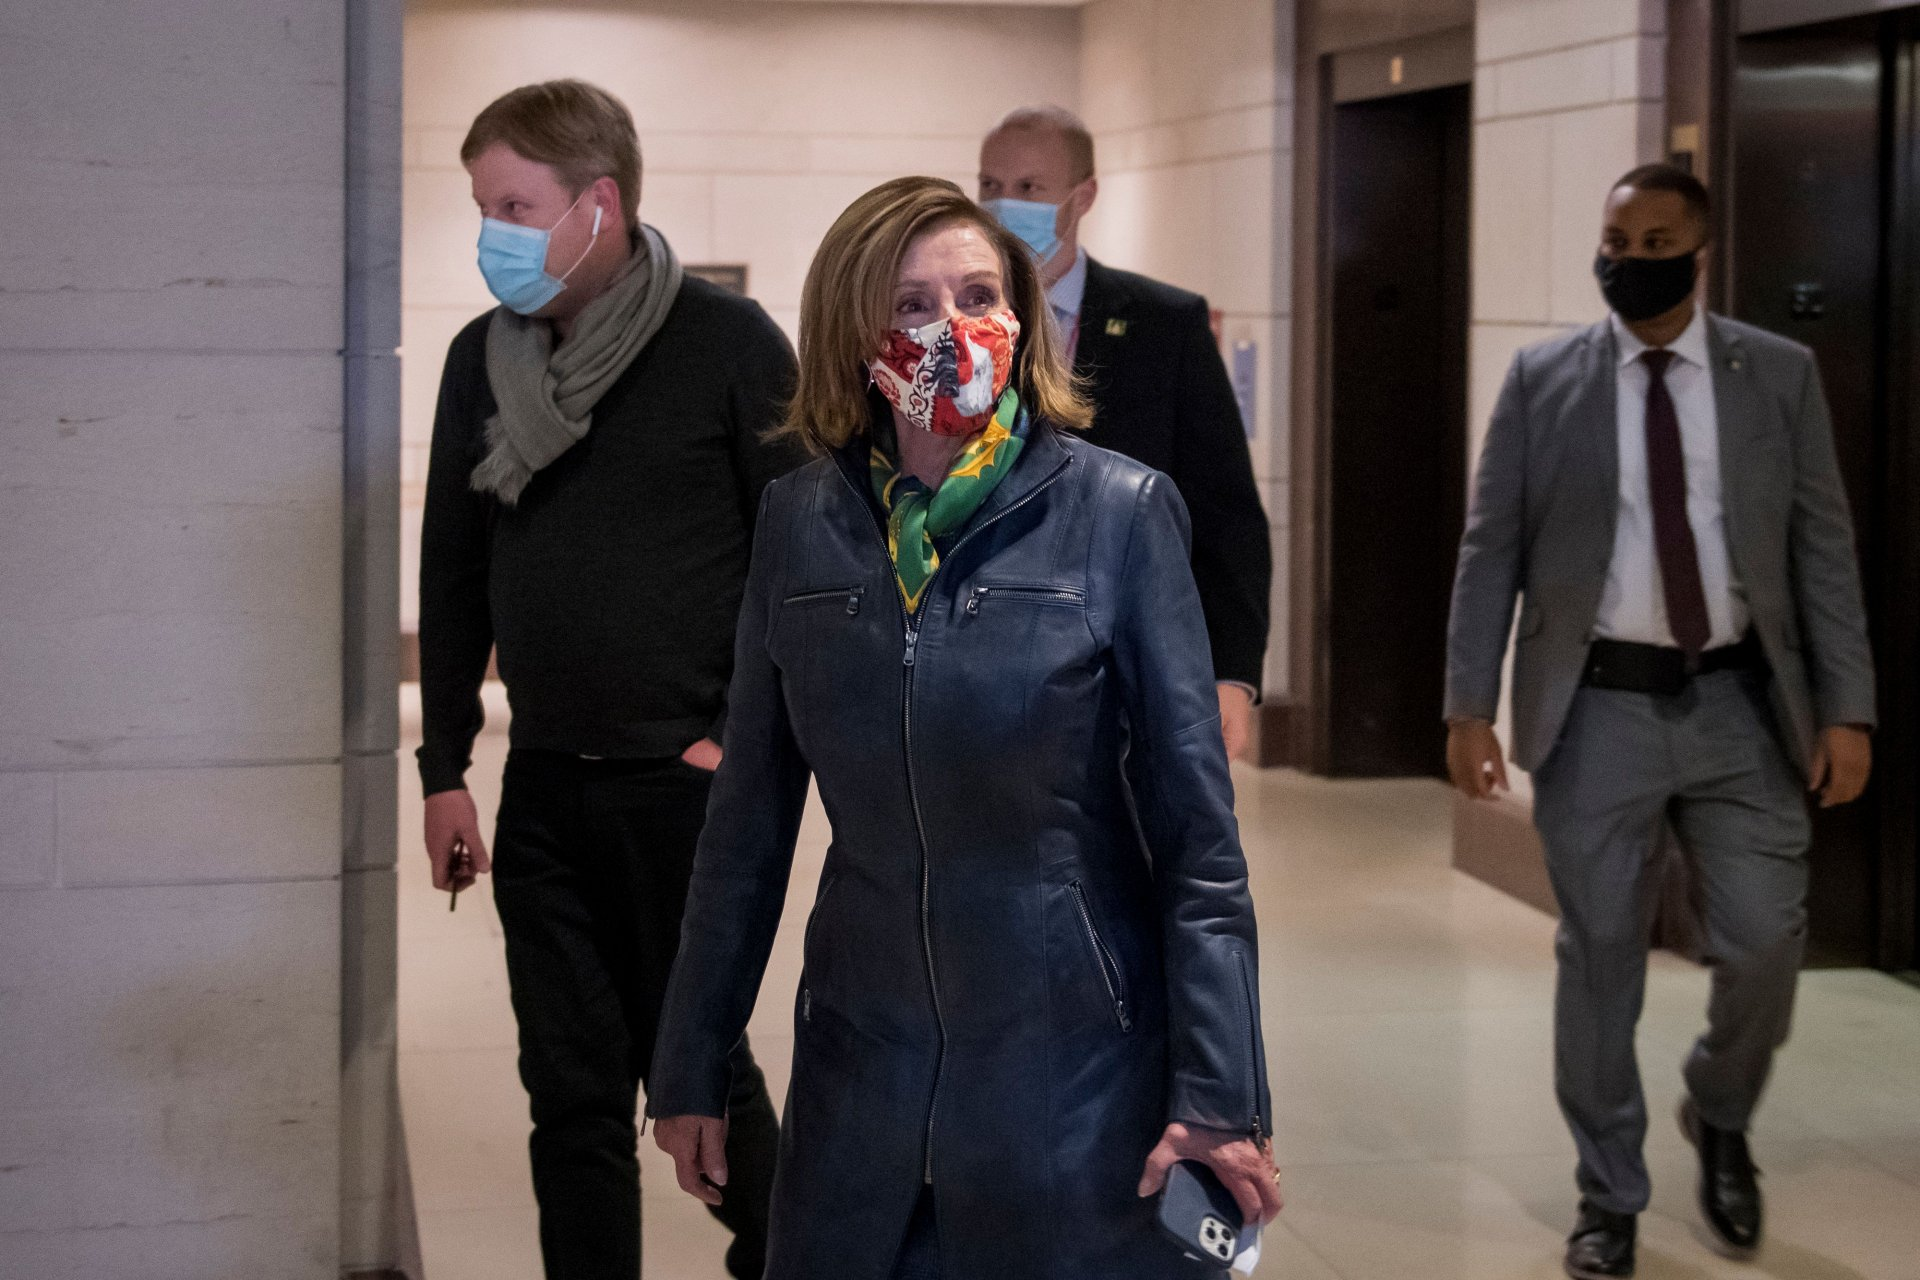 Mandatory Credit: Photo by Shutterstock (11598418c)Speaker of the United States House of Representatives Nancy Pelosi (Democrat of California) makes her way past reporters at the US Capitol in Washington, DC,.